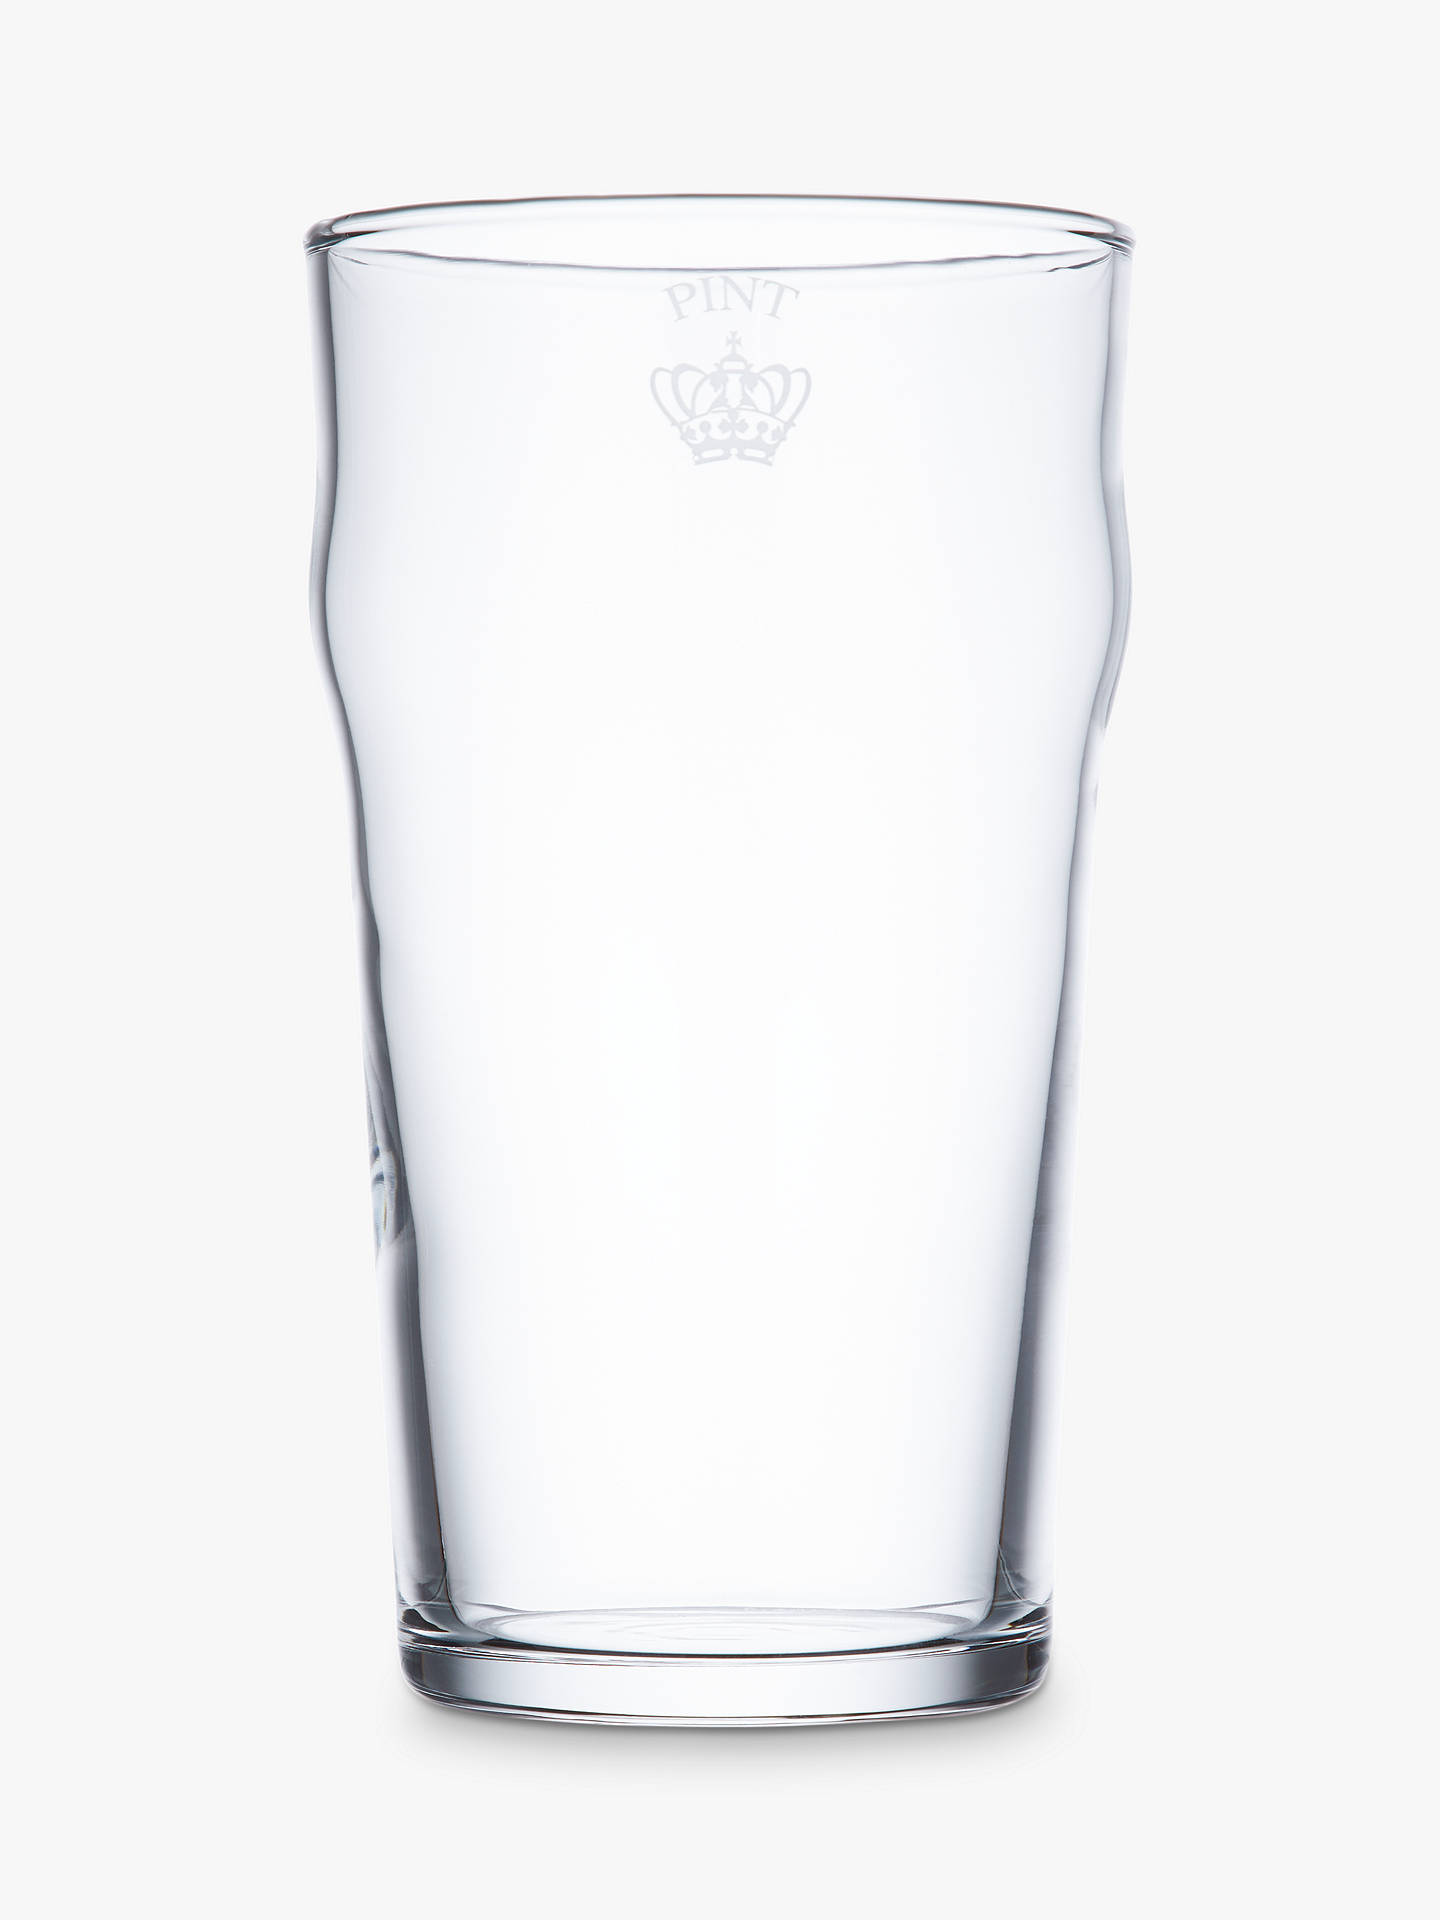 BuyJohn Lewis & Partners Cellar Pint Glasses, Clear, 580ml, Set of 2 Online at johnlewis.com